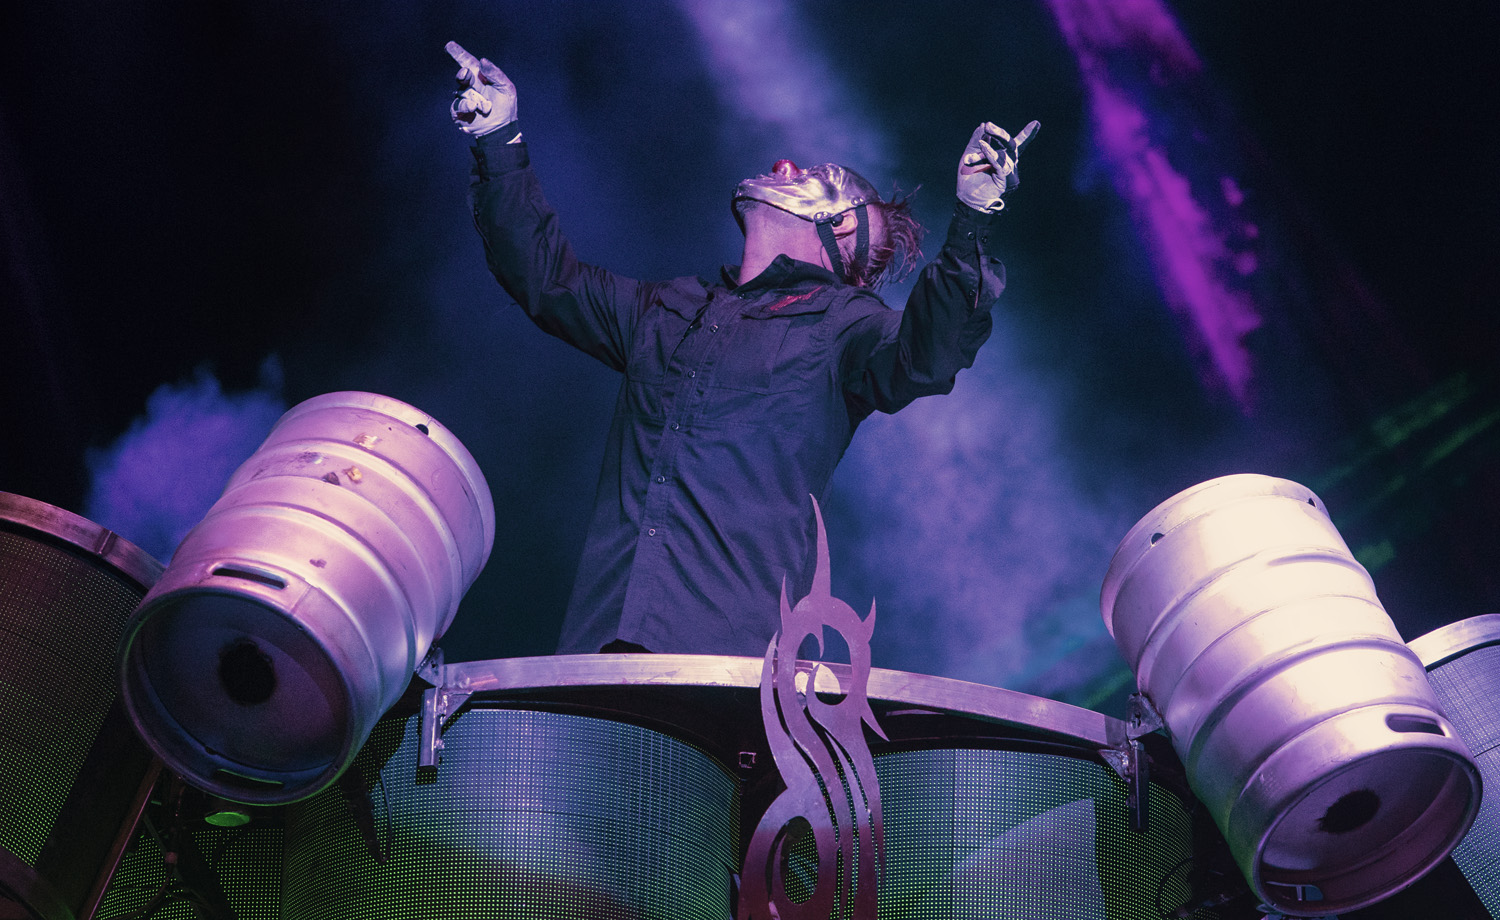 Slipknot_June2019_DownloadFestival_07.jpg